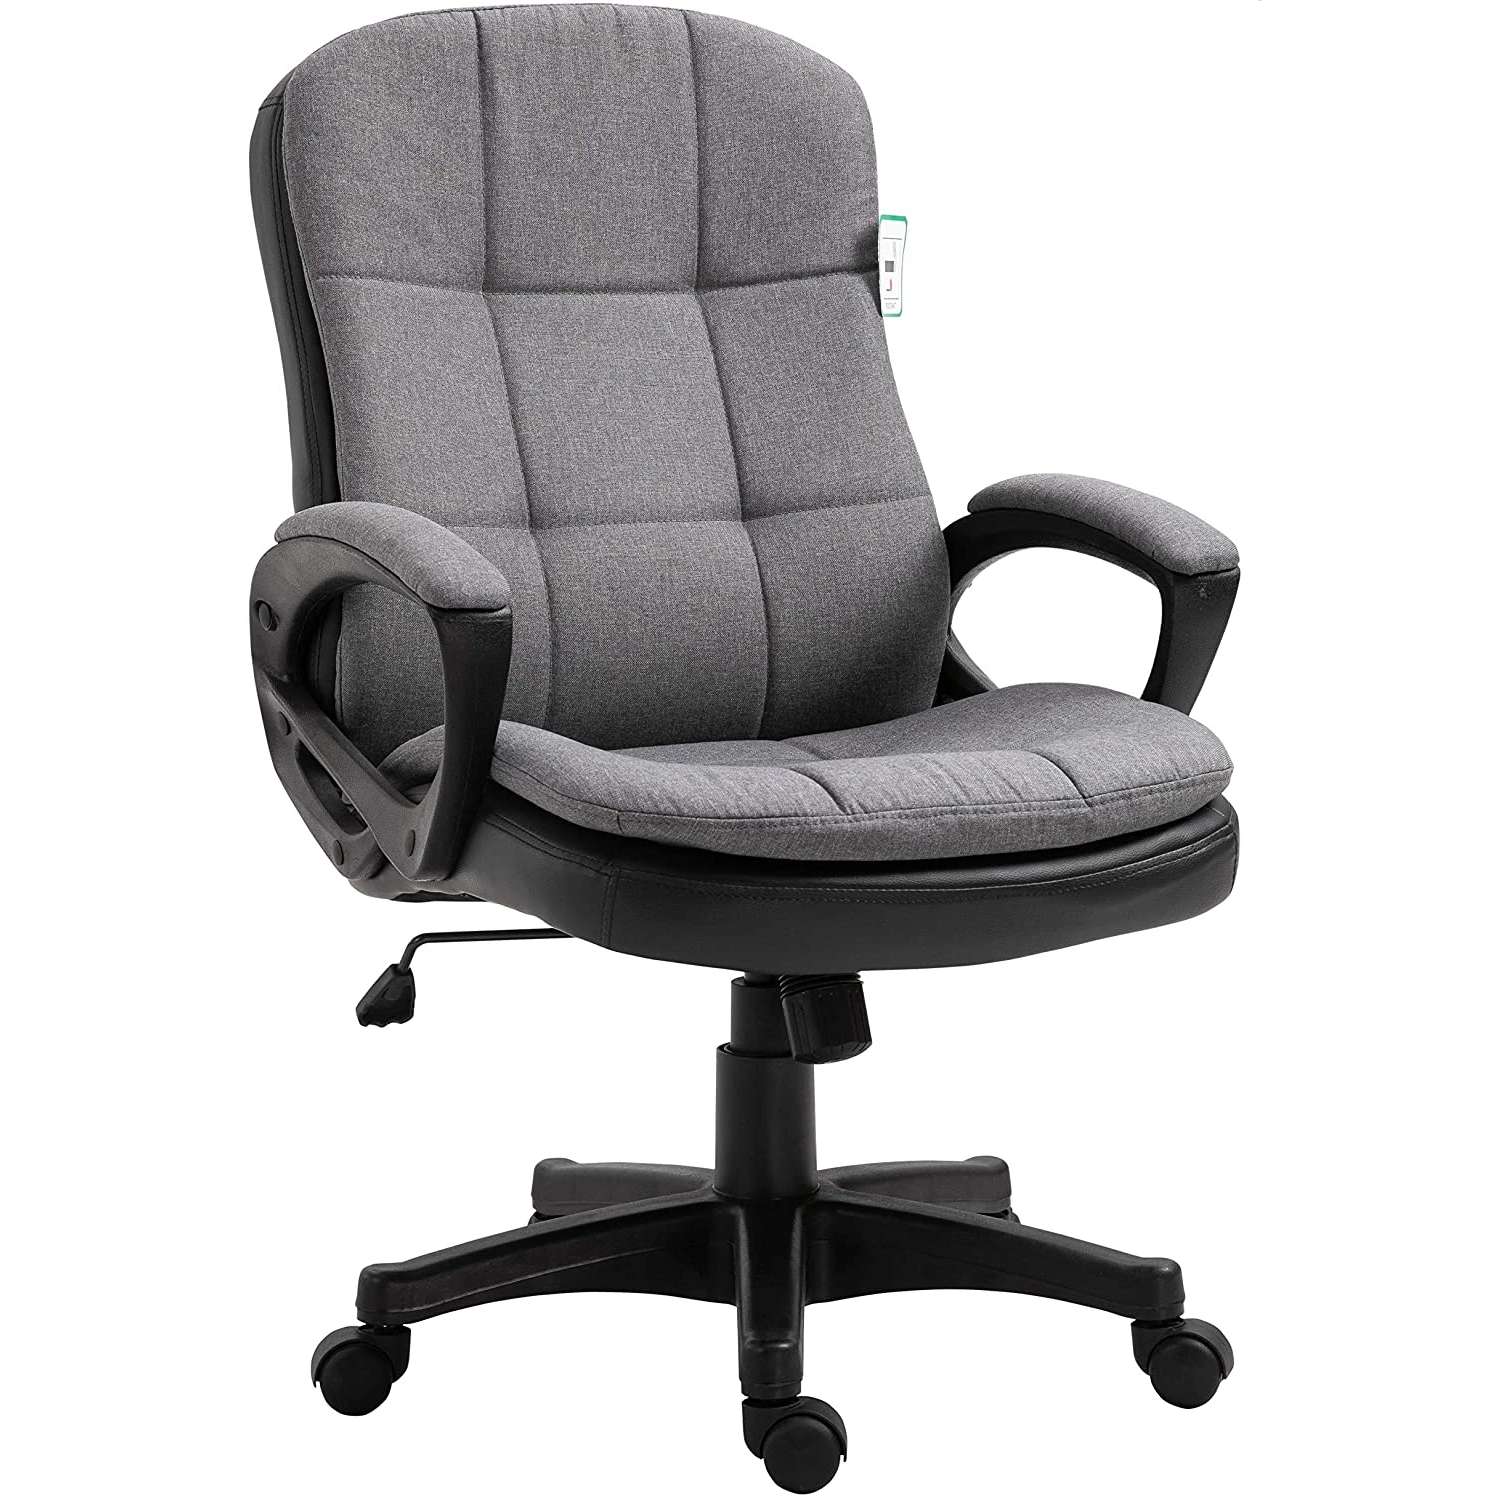 Jona Double Layer Padded Office Chair Grey